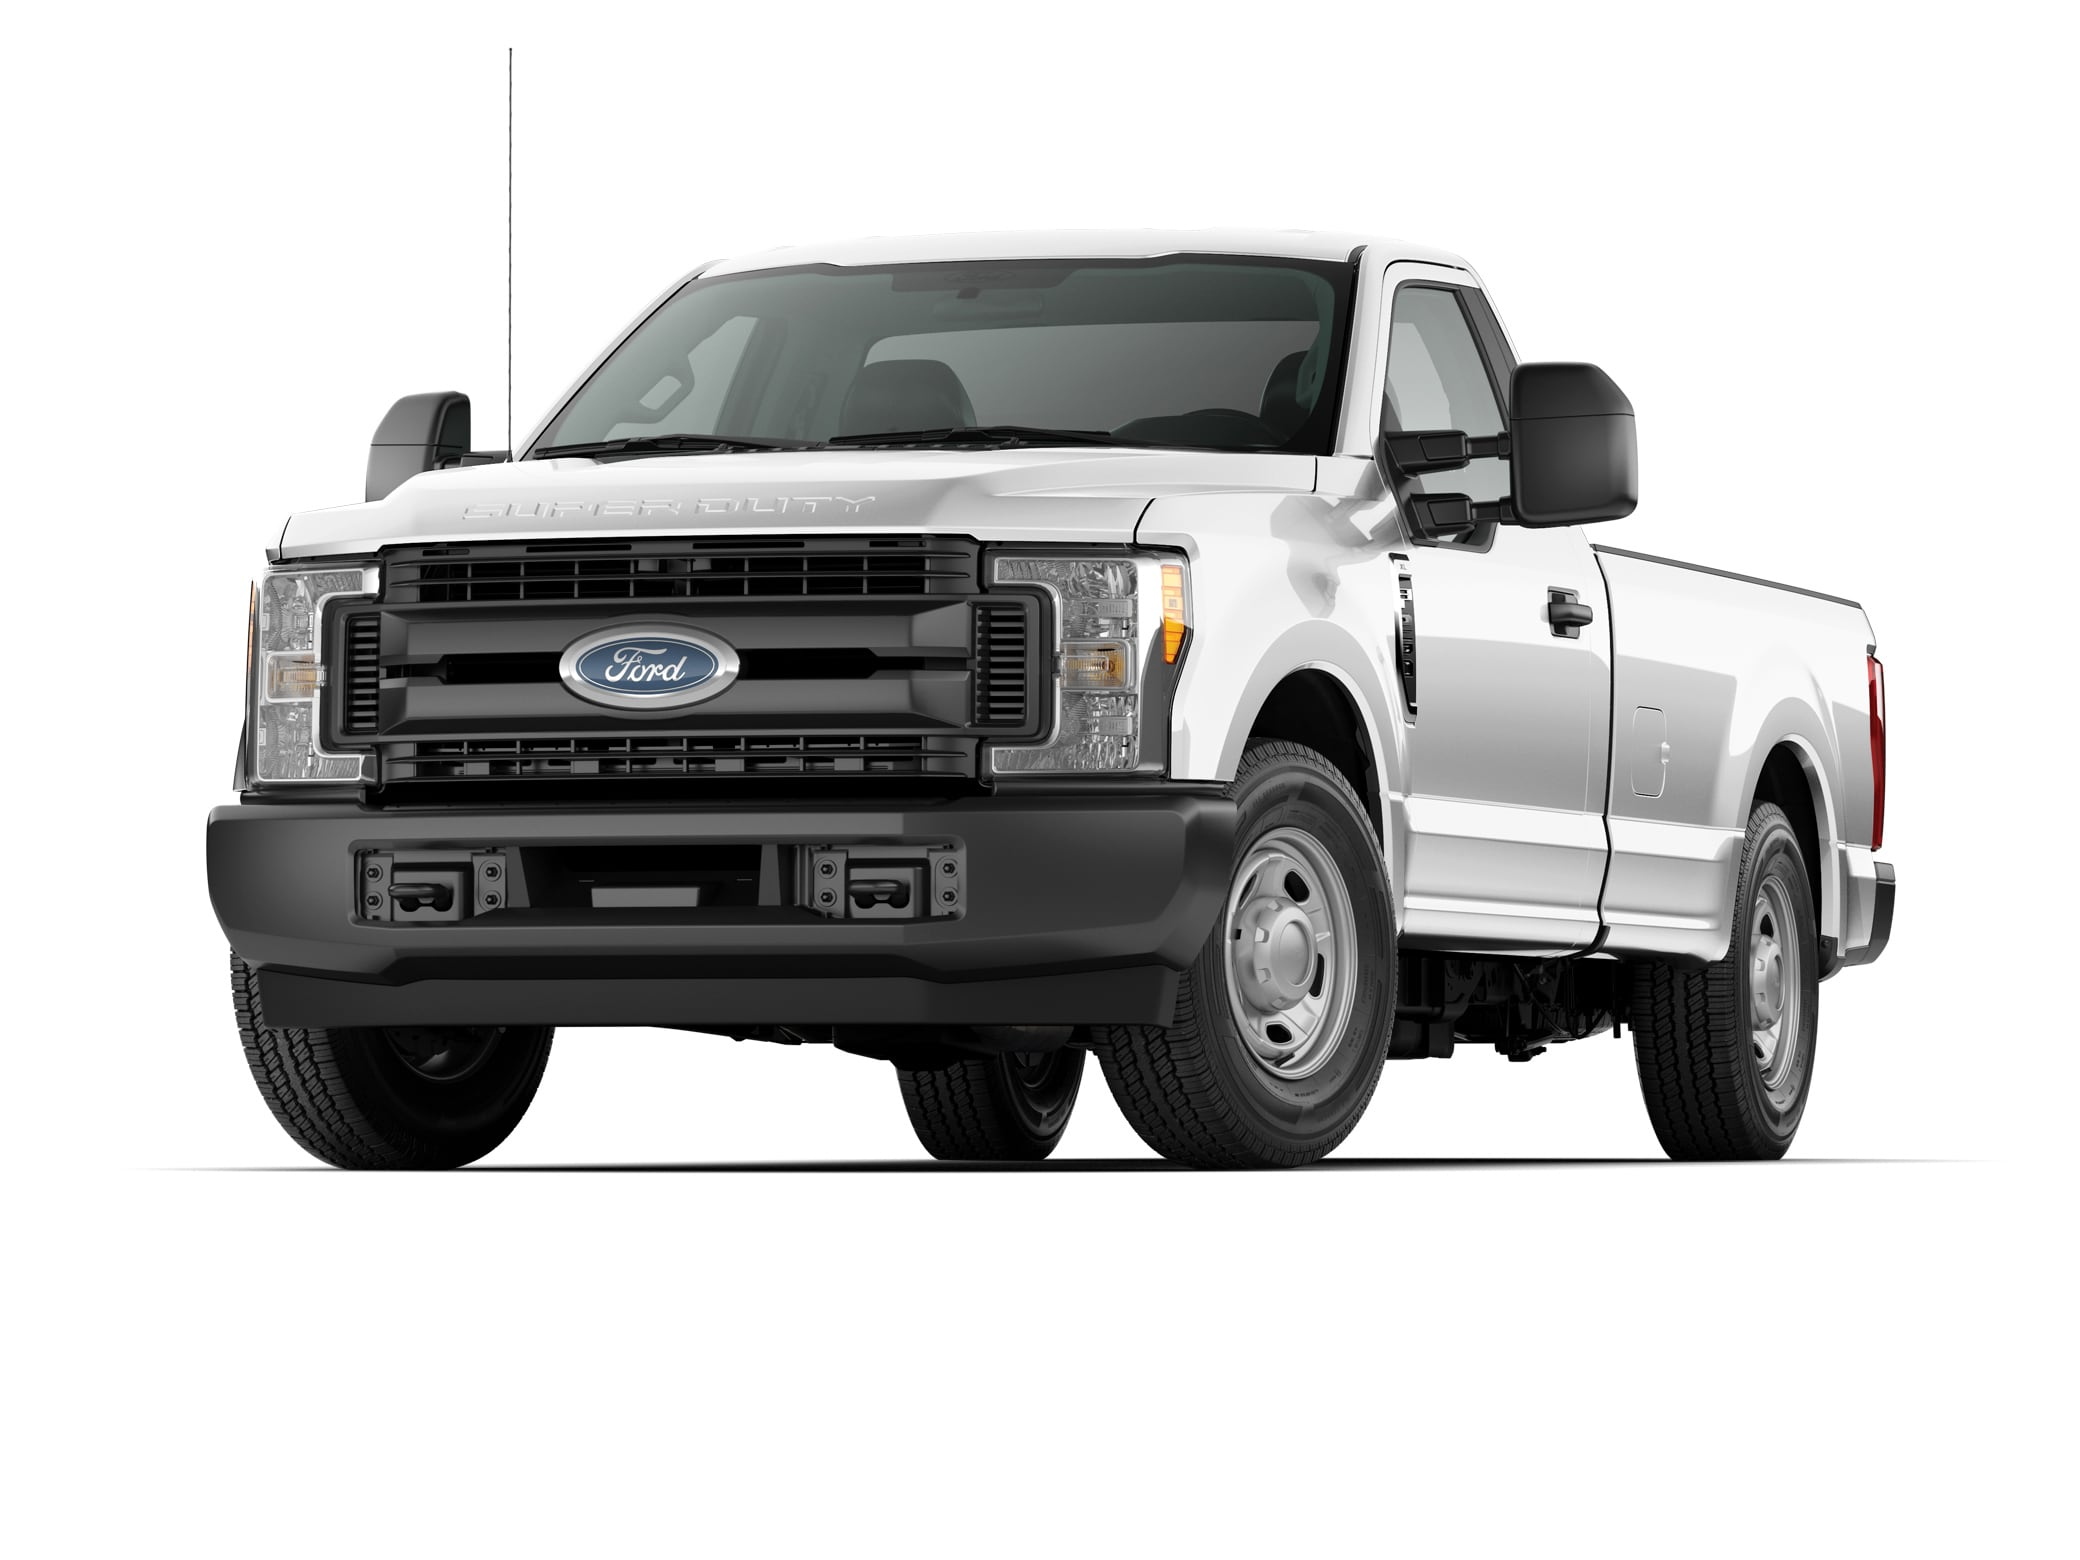 Photo Pre-Owned 2019 Ford F-250 Truck Regular Cab near Tampa FL